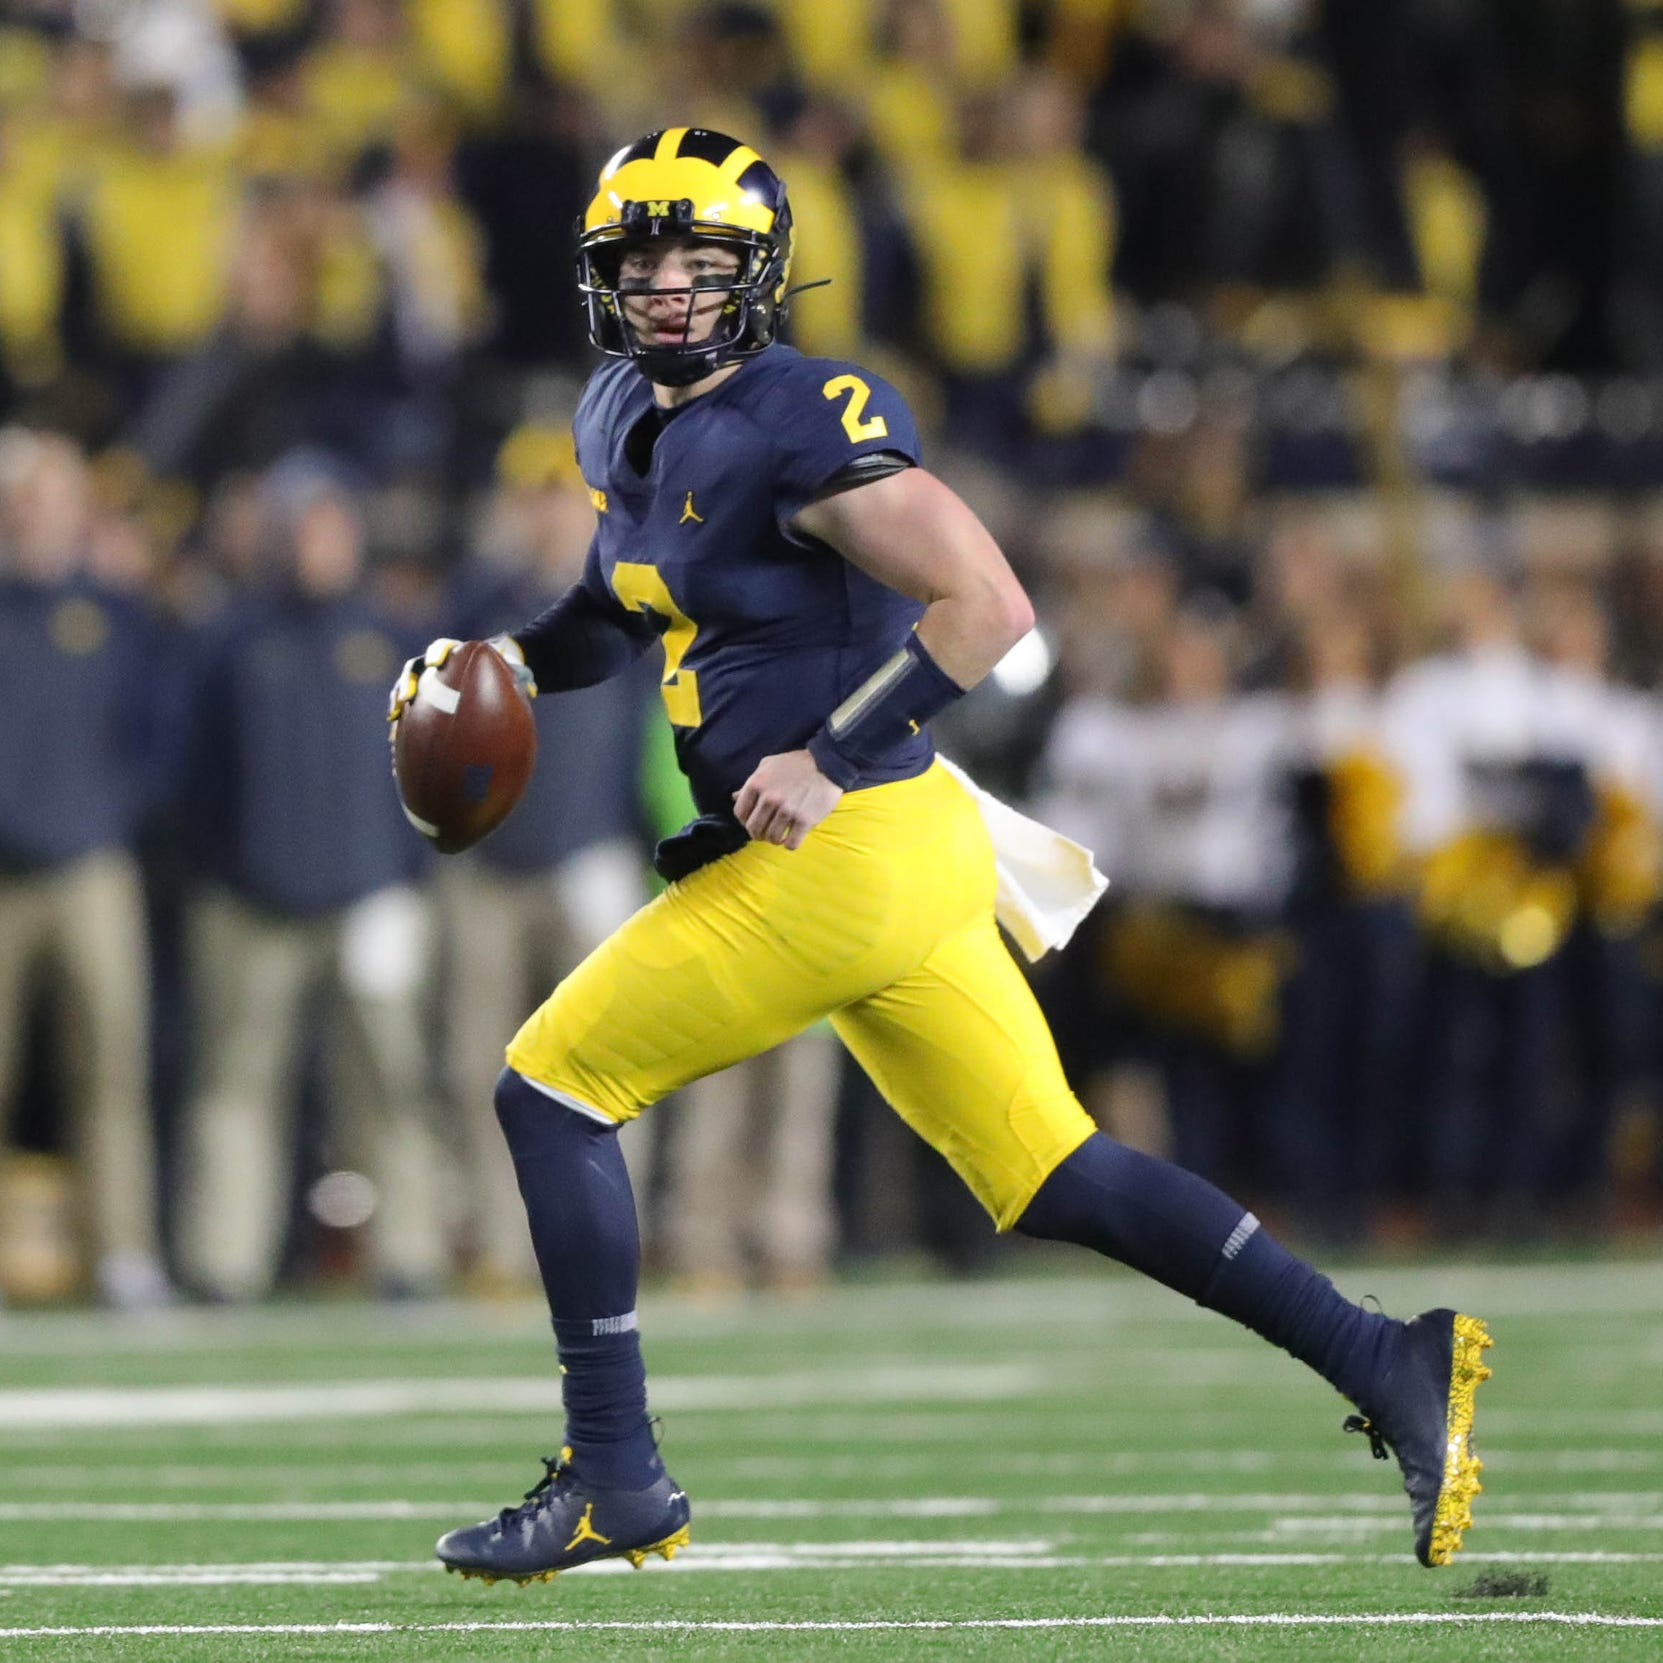 Shea Patterson's Michigan journey hits crucial juncture: Michigan State